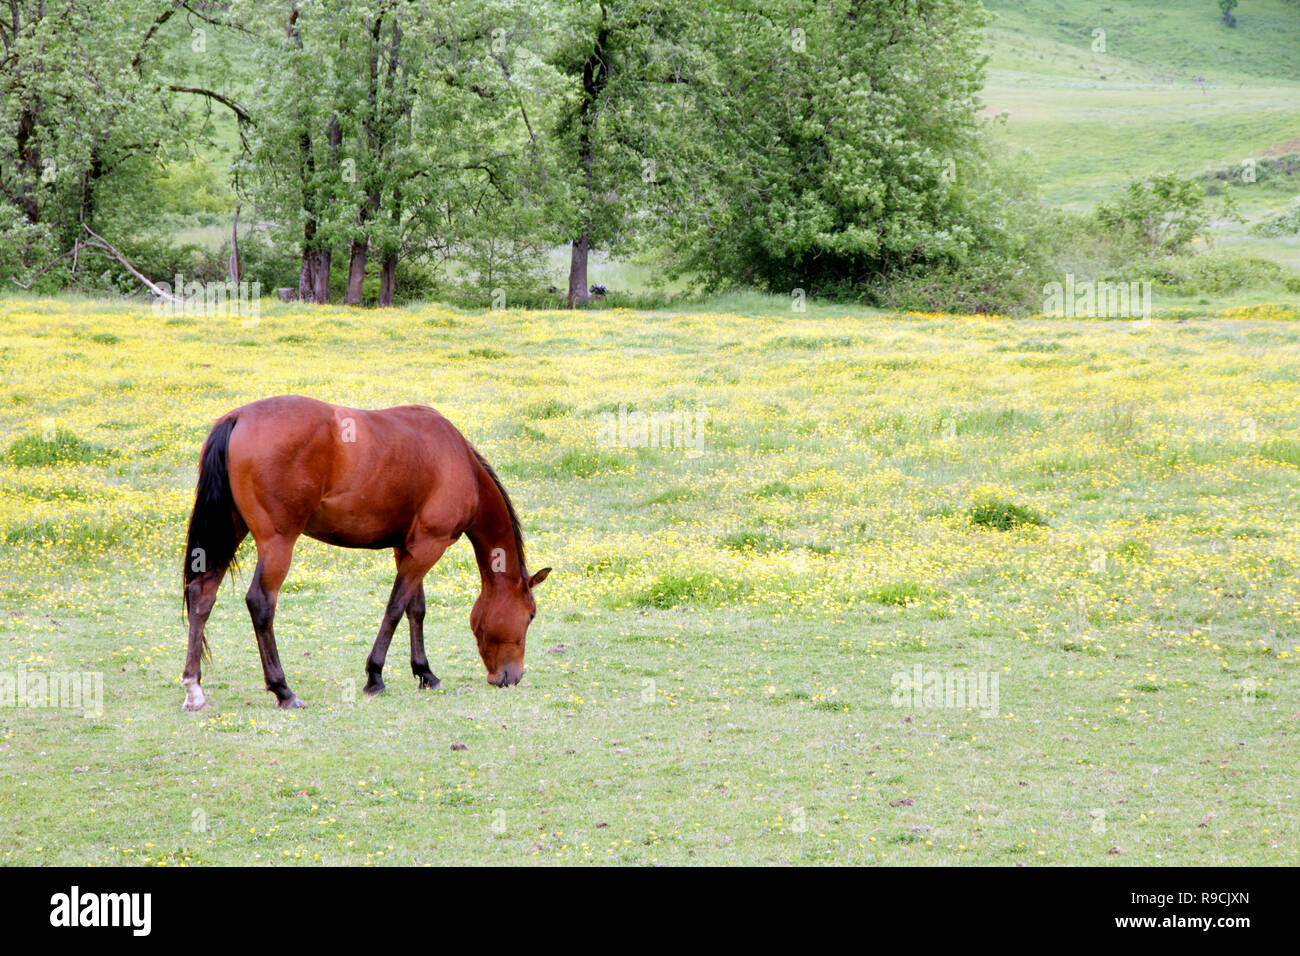 41,052.00460 Bay brown horse eating in spring yellow flowers green pasture with deciduous trees in background, slight hill & valley Oregon US - Stock Image